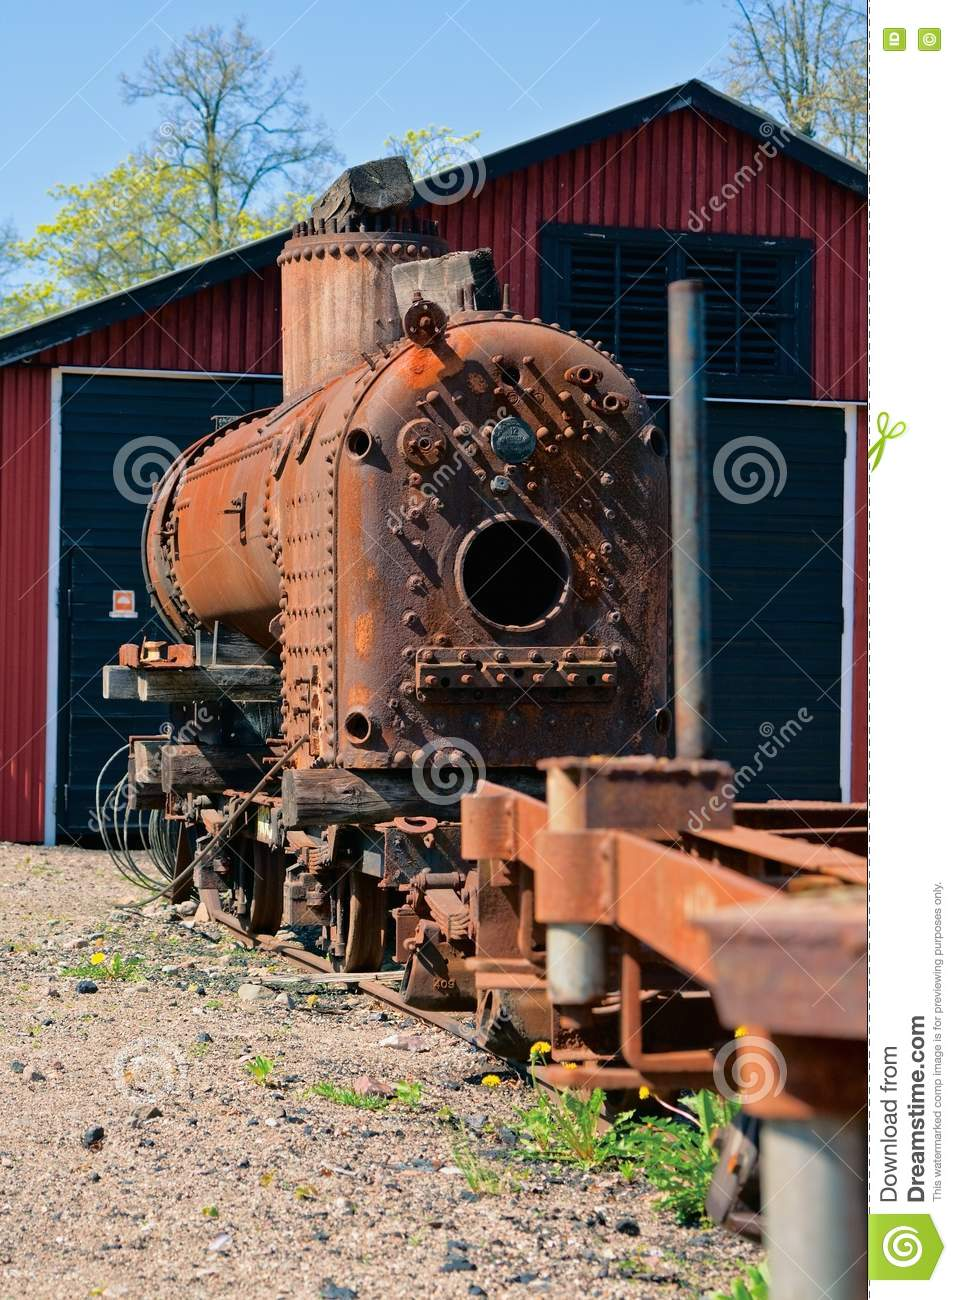 Old rusty engine stock image. Image of transportation ...